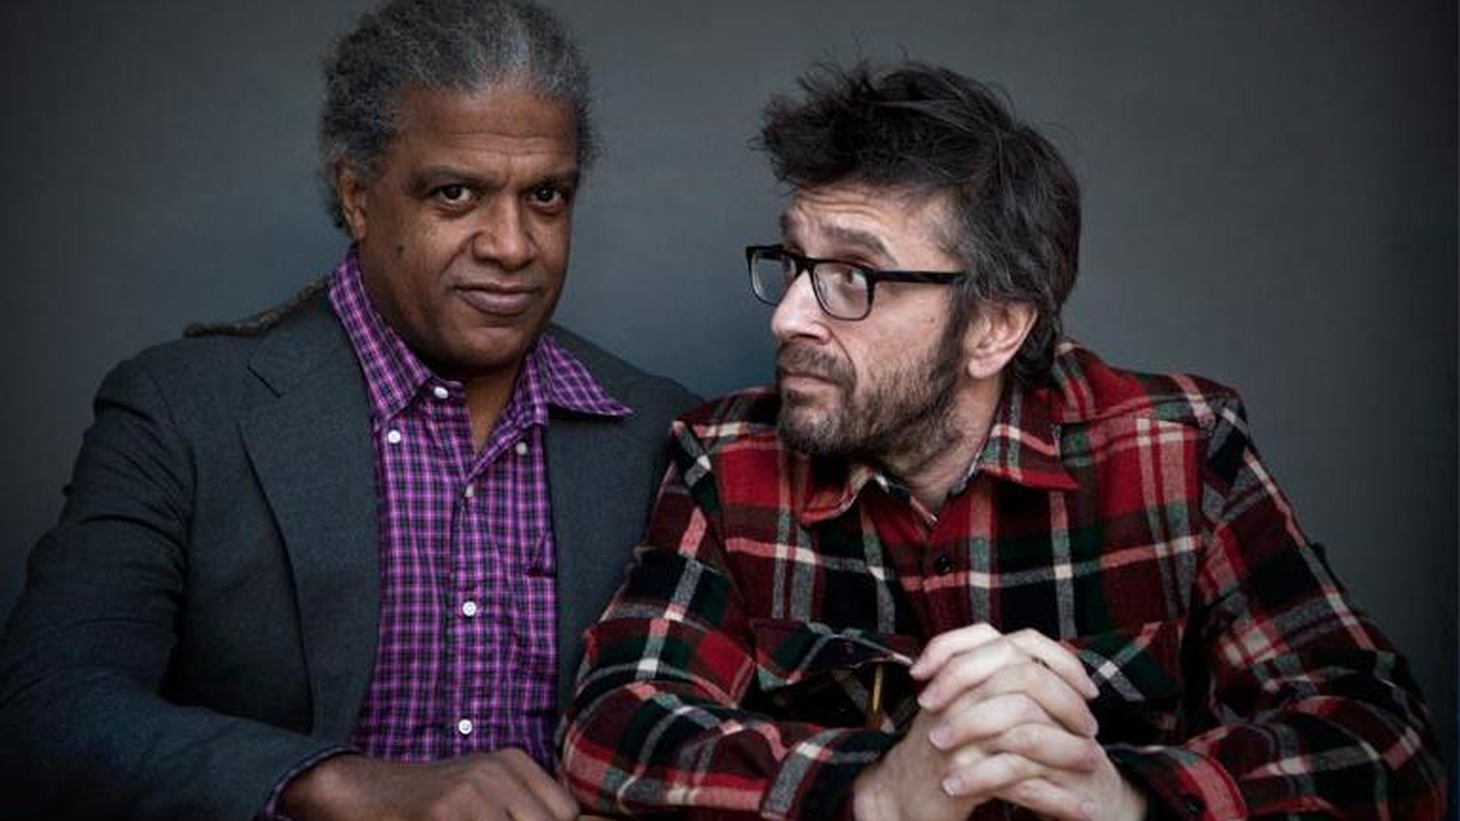 Elvis Mitchell sits down with WTF podcast host Marc Maron to discuss comedy, tragedy, and getting people to talk about it.